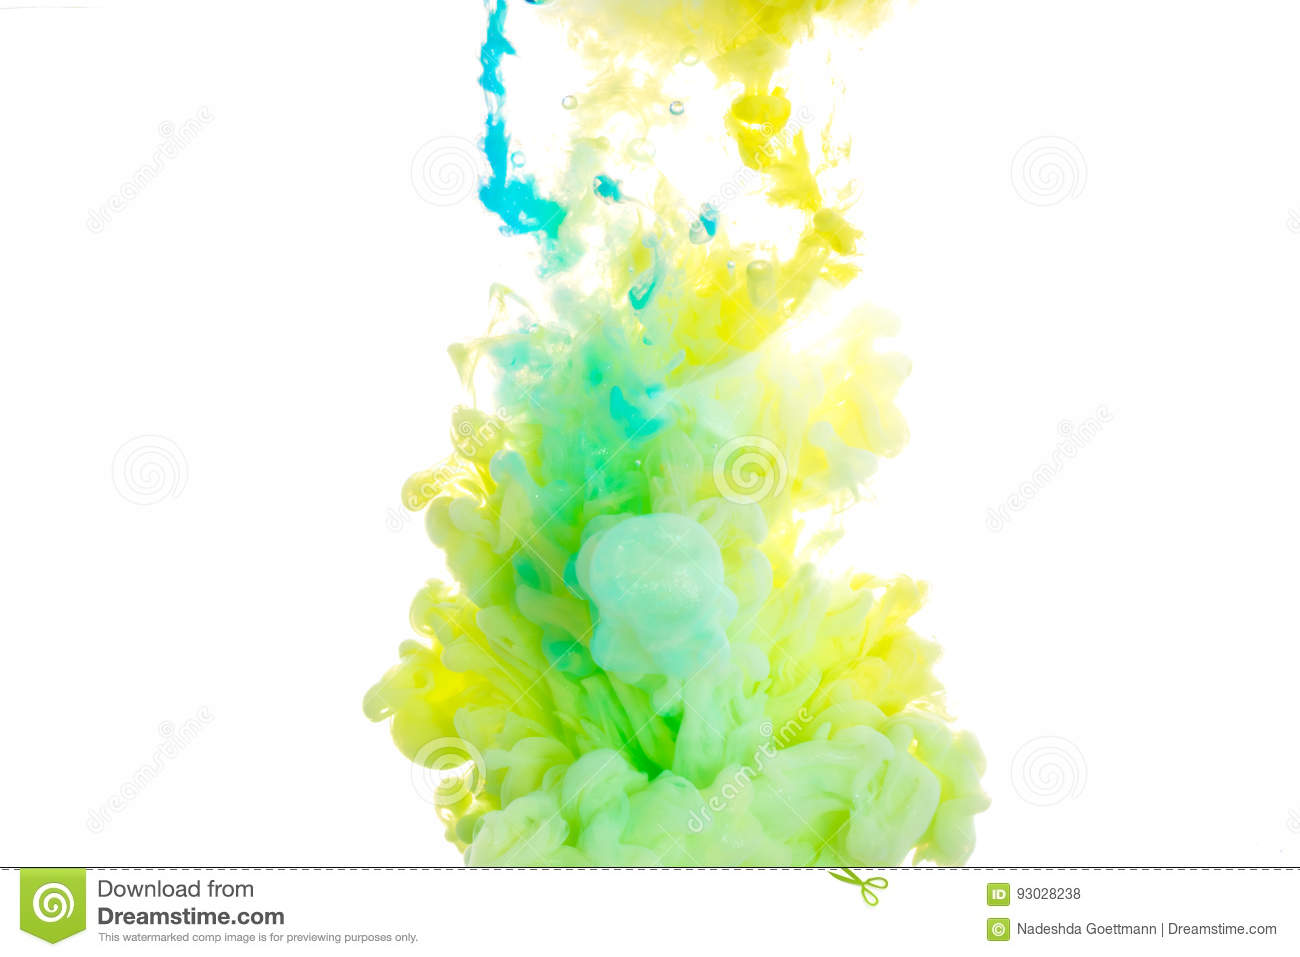 Ink. Yellow, blue, and green acrylic colors. Ink swirling in water. Color explosion